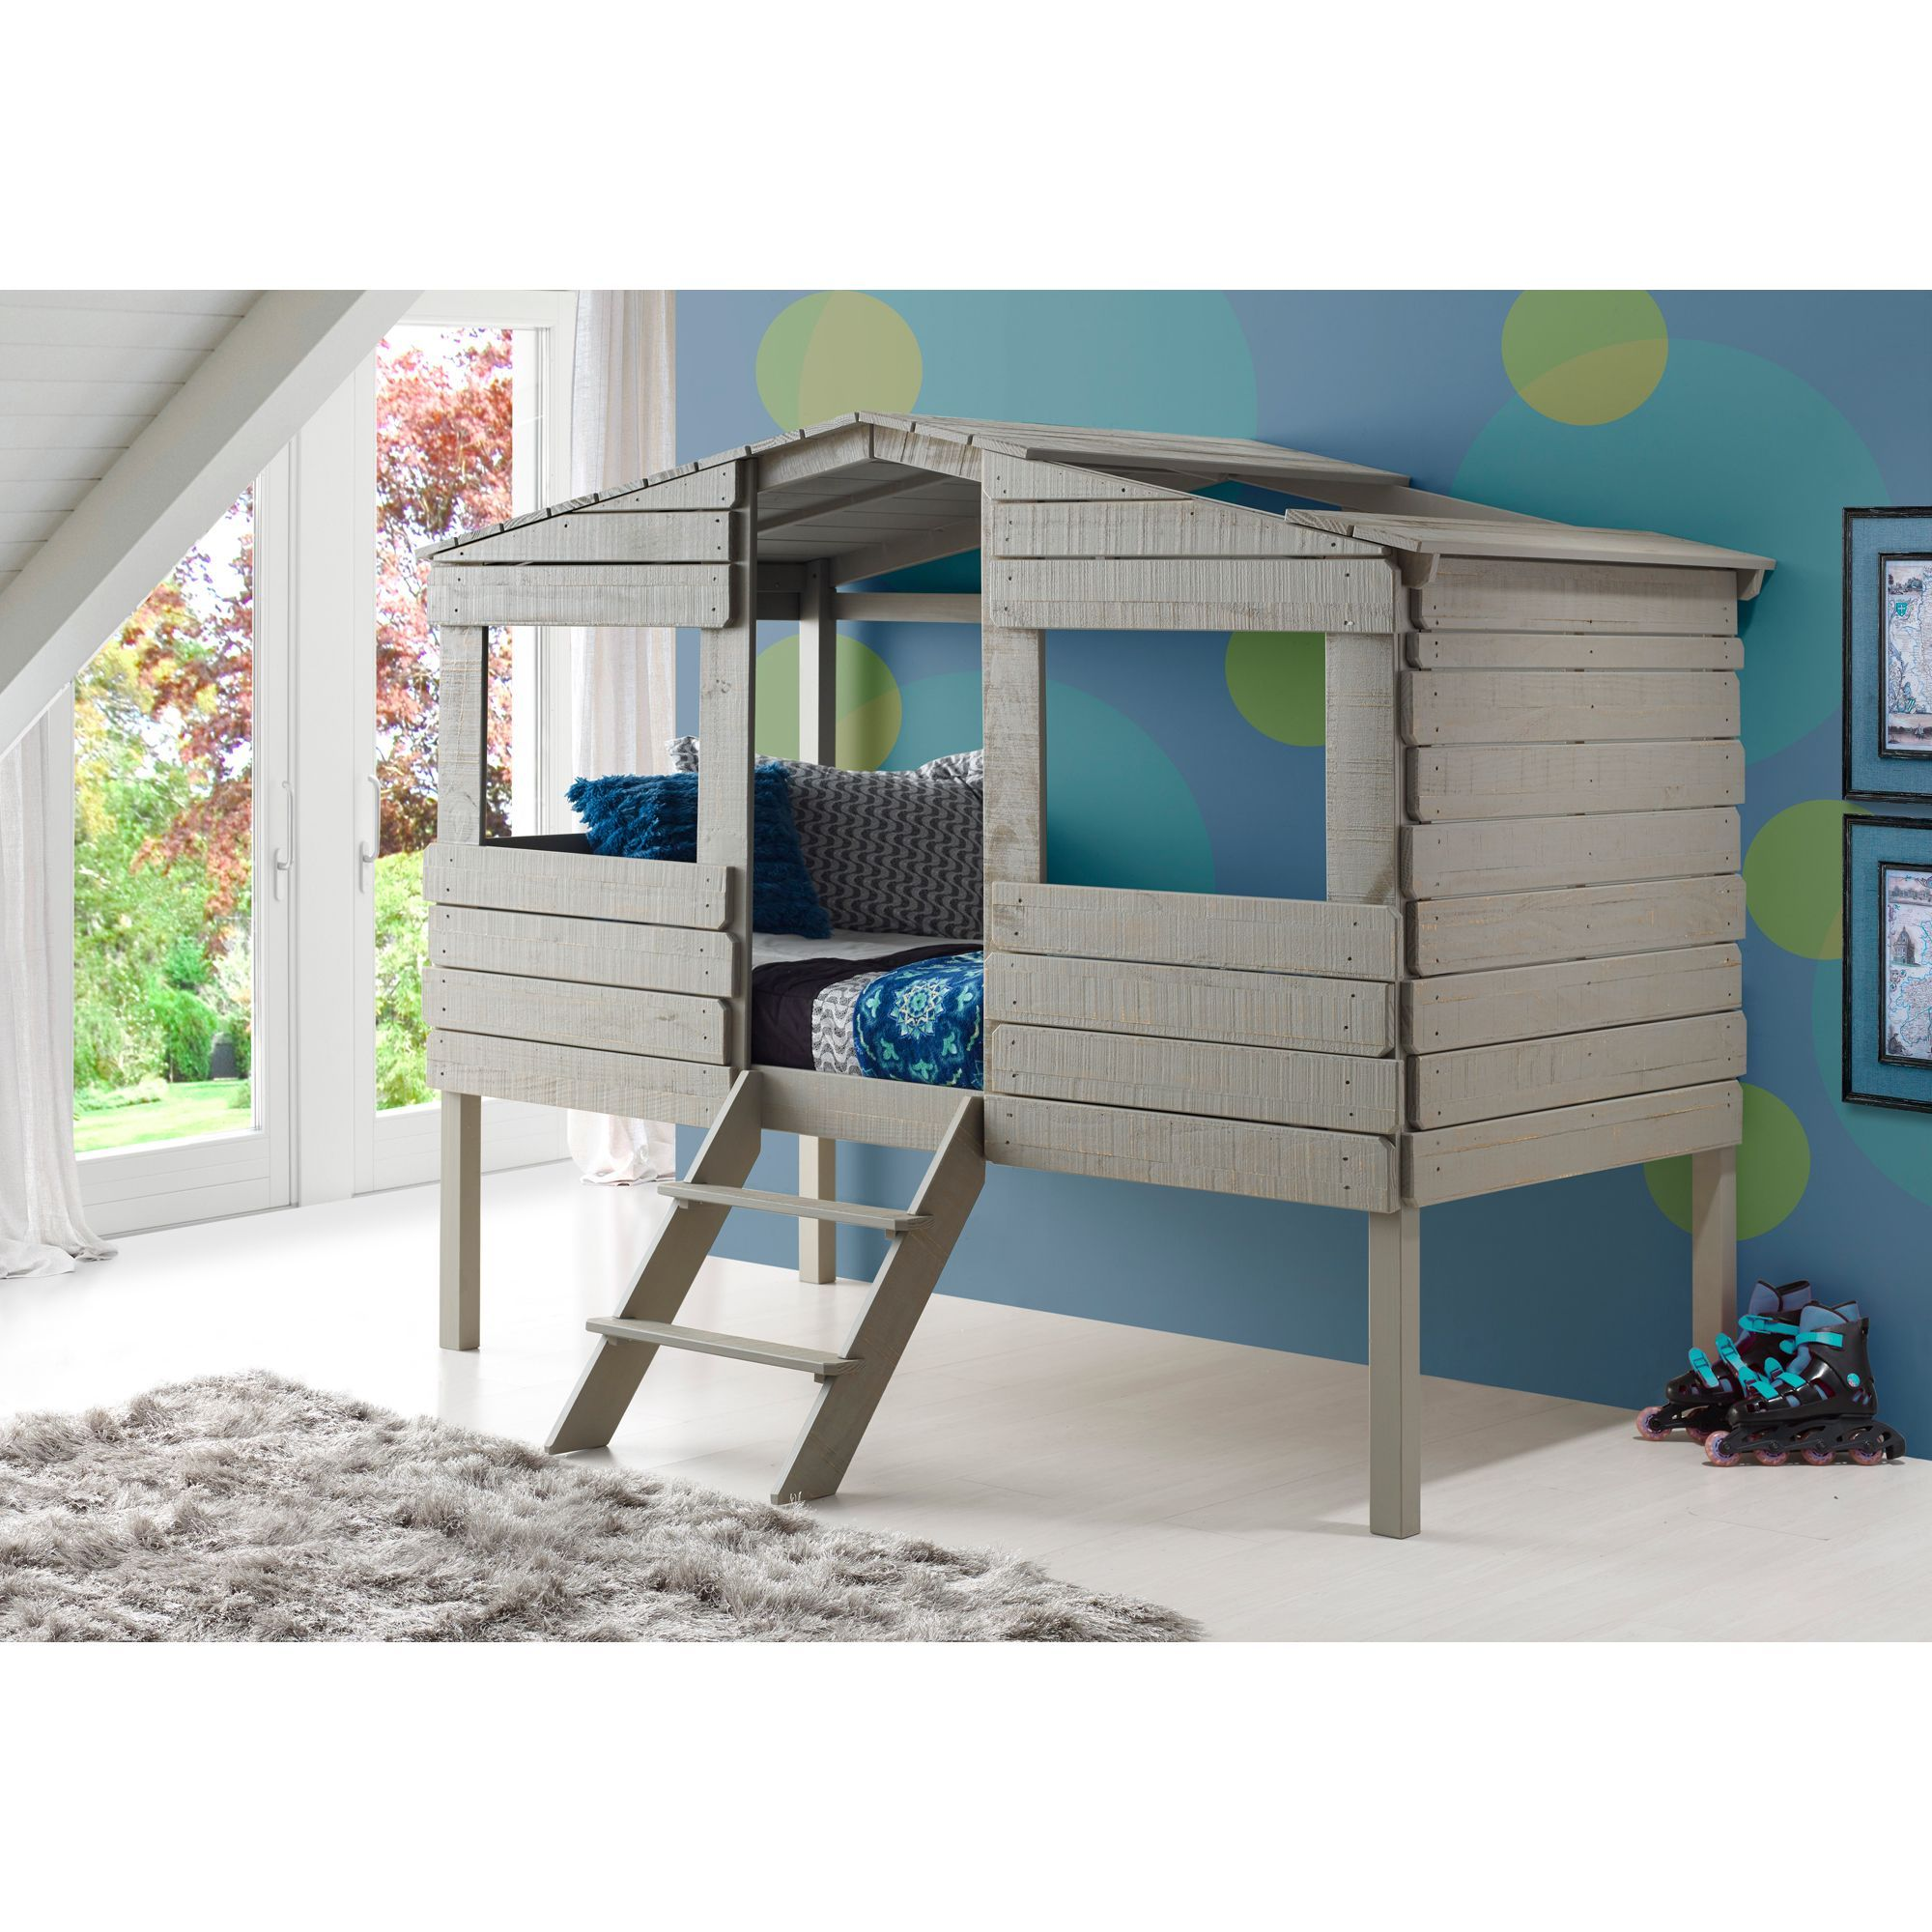 my child would day i if saver bed some wonder like pin this space loft s great kids